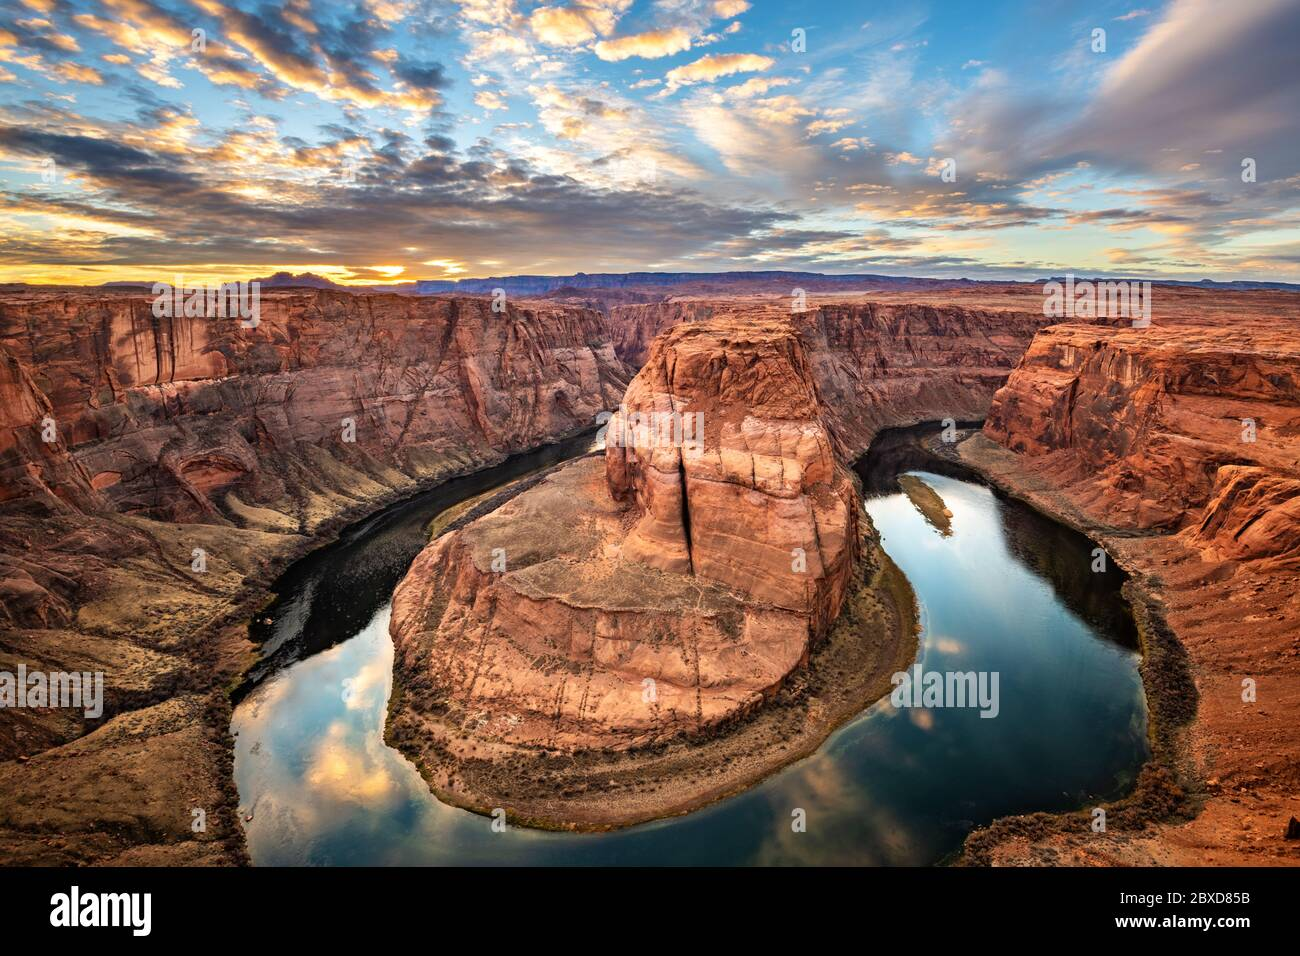 Horseshoe Bend is very scenic part of the Colorado River located near the town of Page, Arizona. Stock Photo